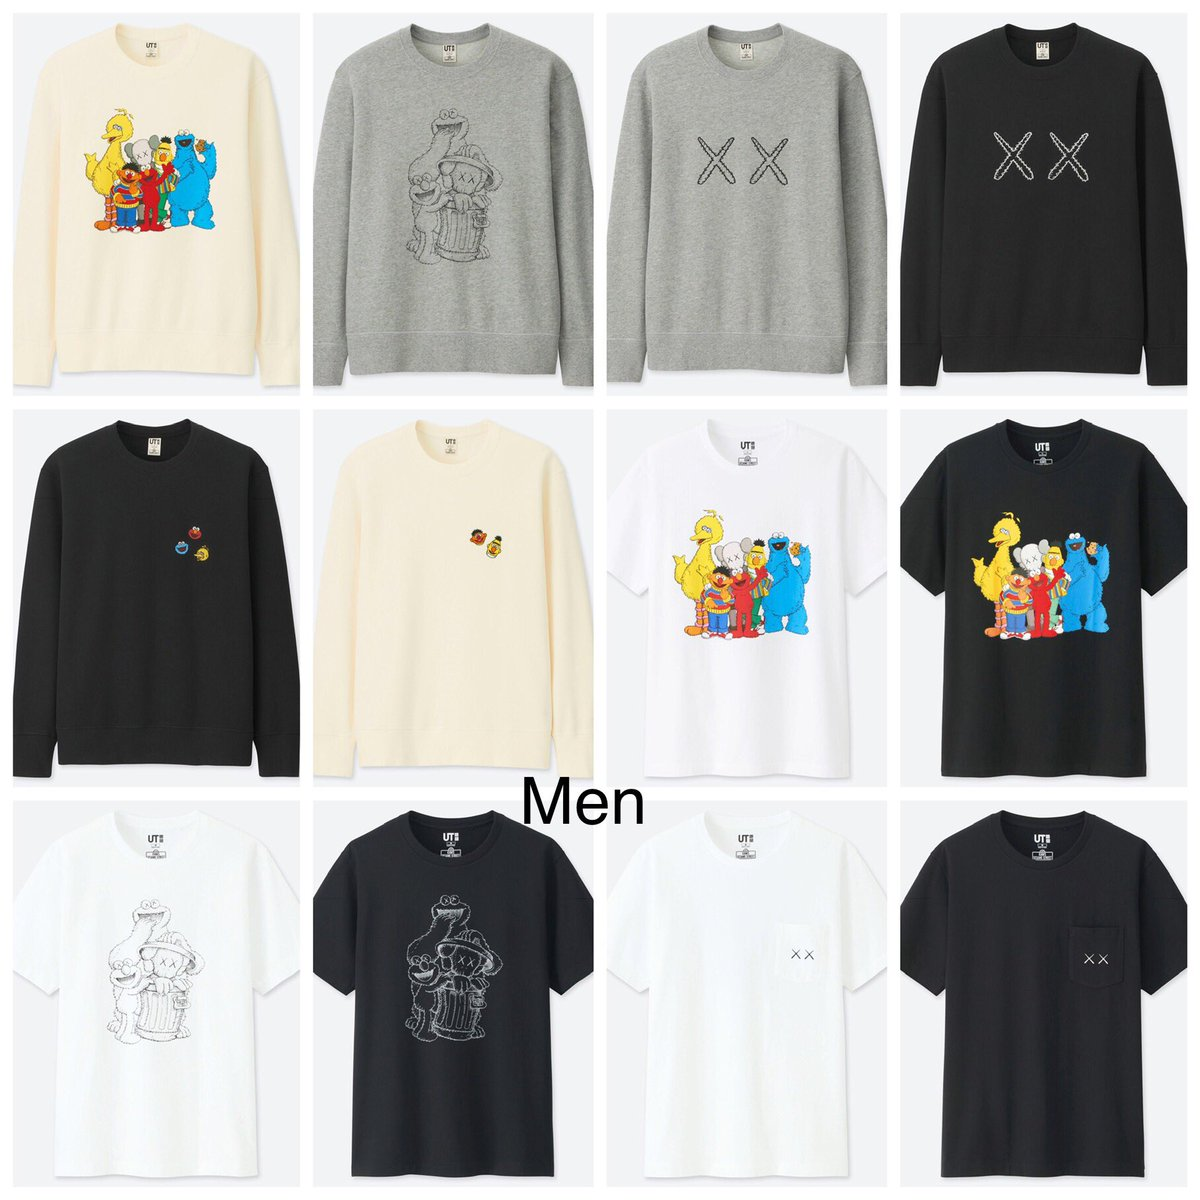 a54232efb New KAWS x Sesame Street x Uniqlo complete collection dropping 11/19.  https://www.uniqlo.com/us/en/ut-graphic-tees/kaws-x-sesame-street …pic. twitter.com/ ...